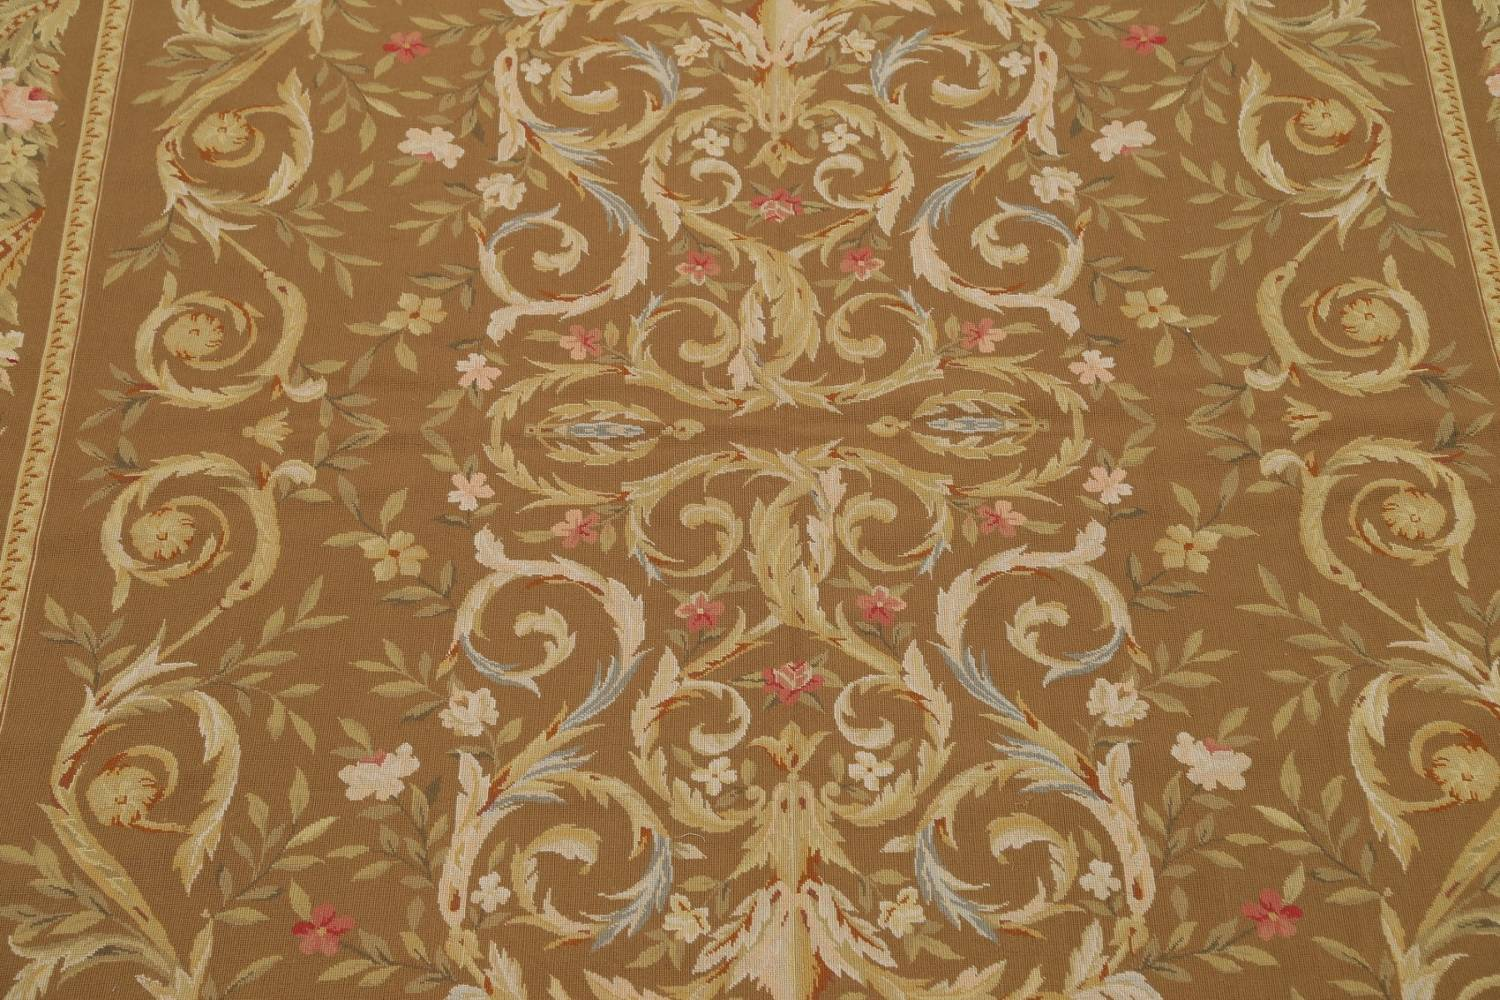 Floral Brown Aubusson Chinese Oriental Hand-Woven Area Rug Wool 8x10 image 4